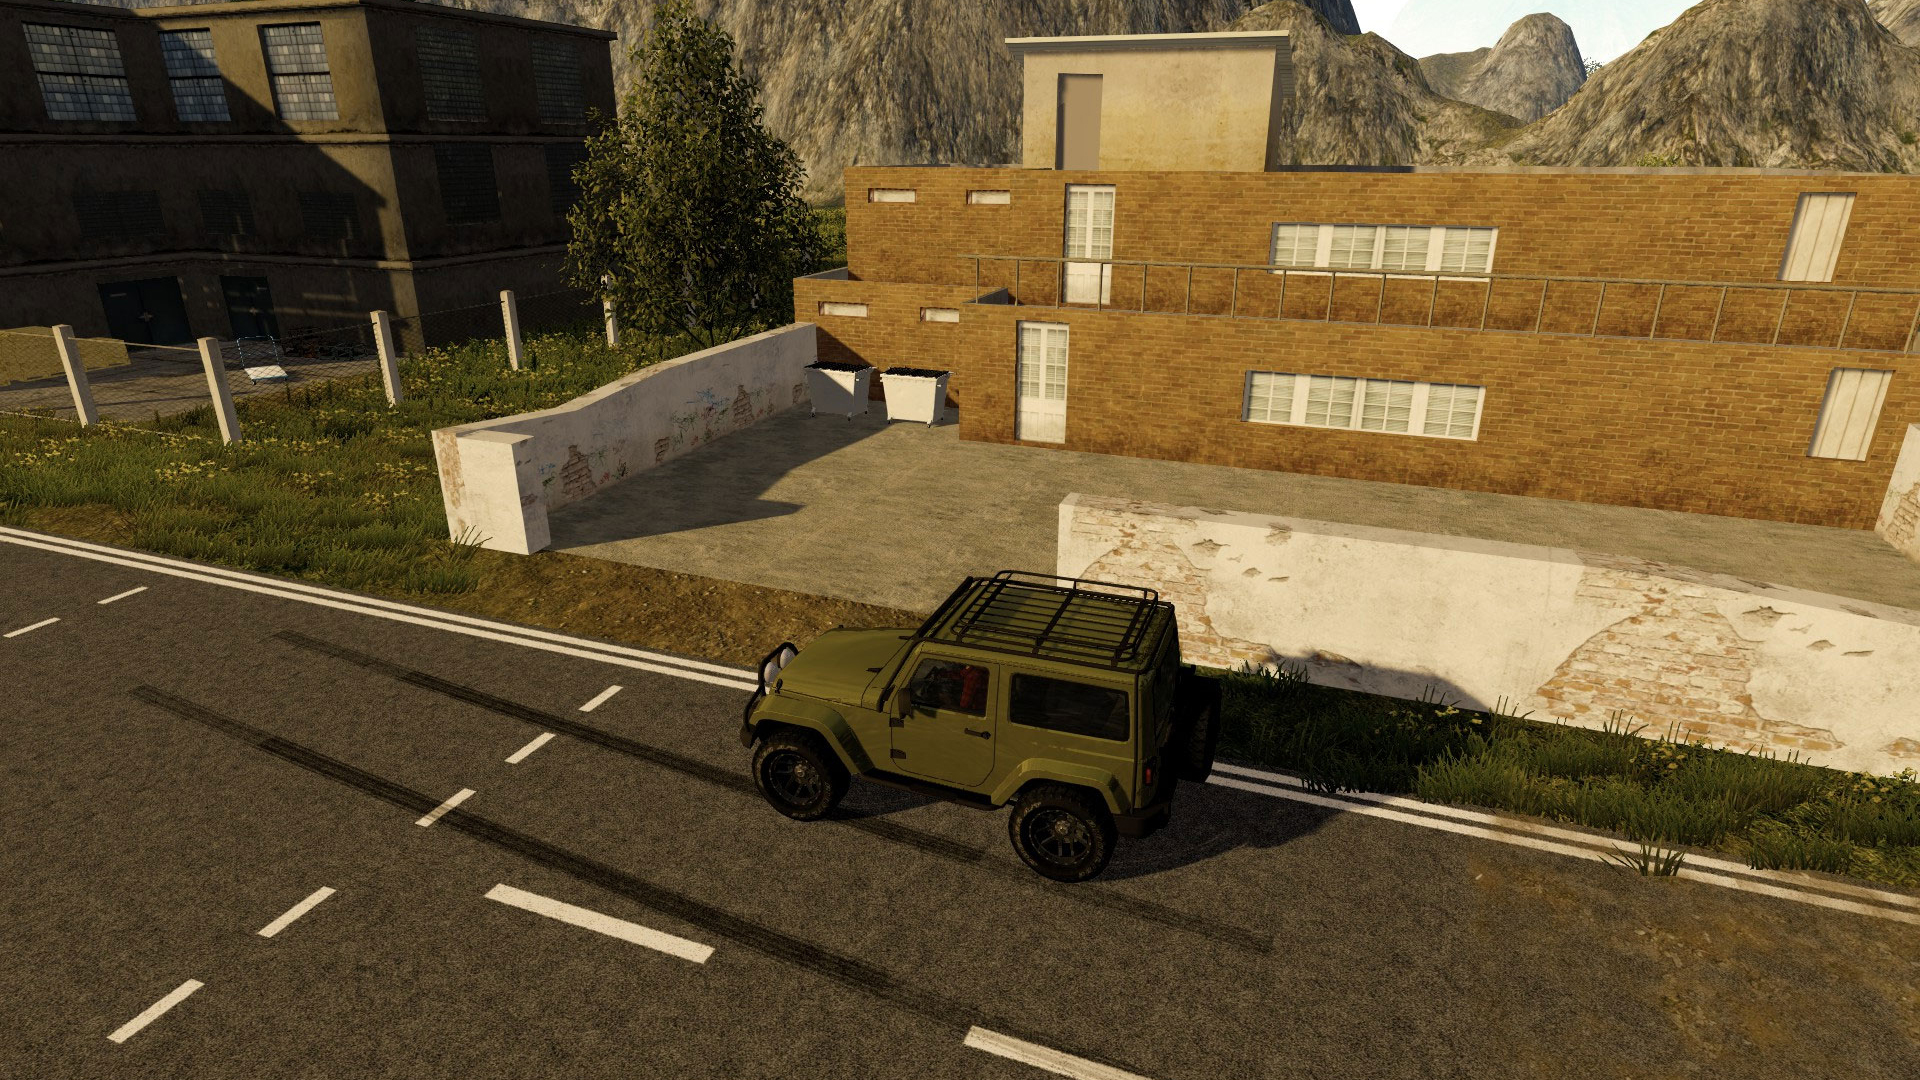 Forestry 2017 The Simulation Repack Small Size Highly Compressed